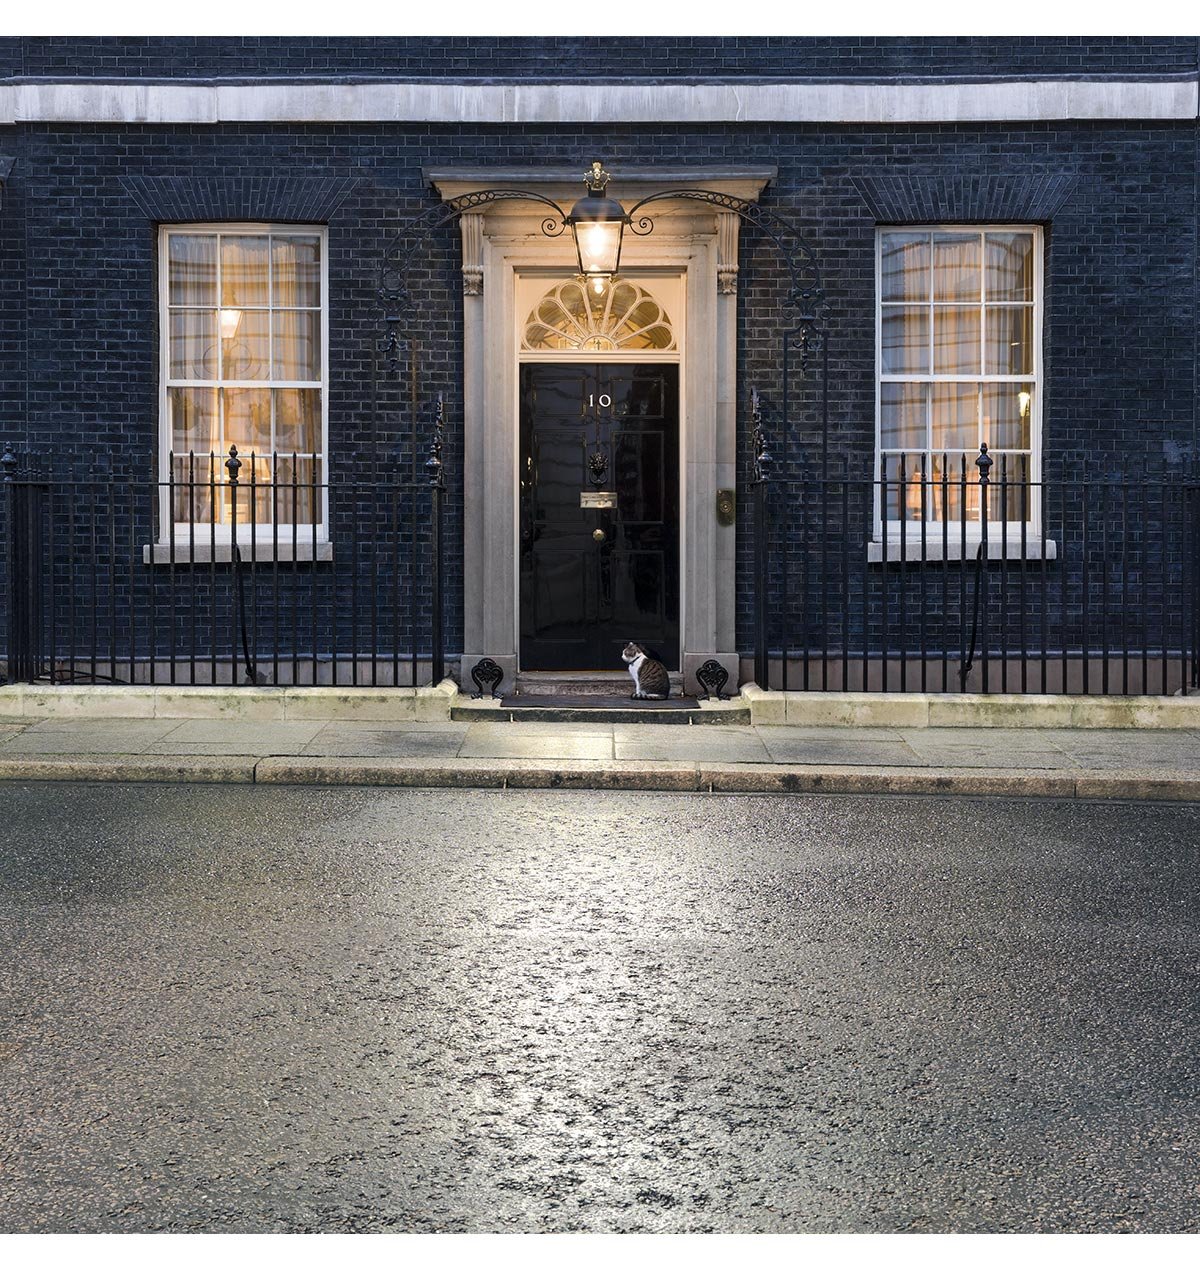 10 Downing Street and Larry the cat. Whitehall, London